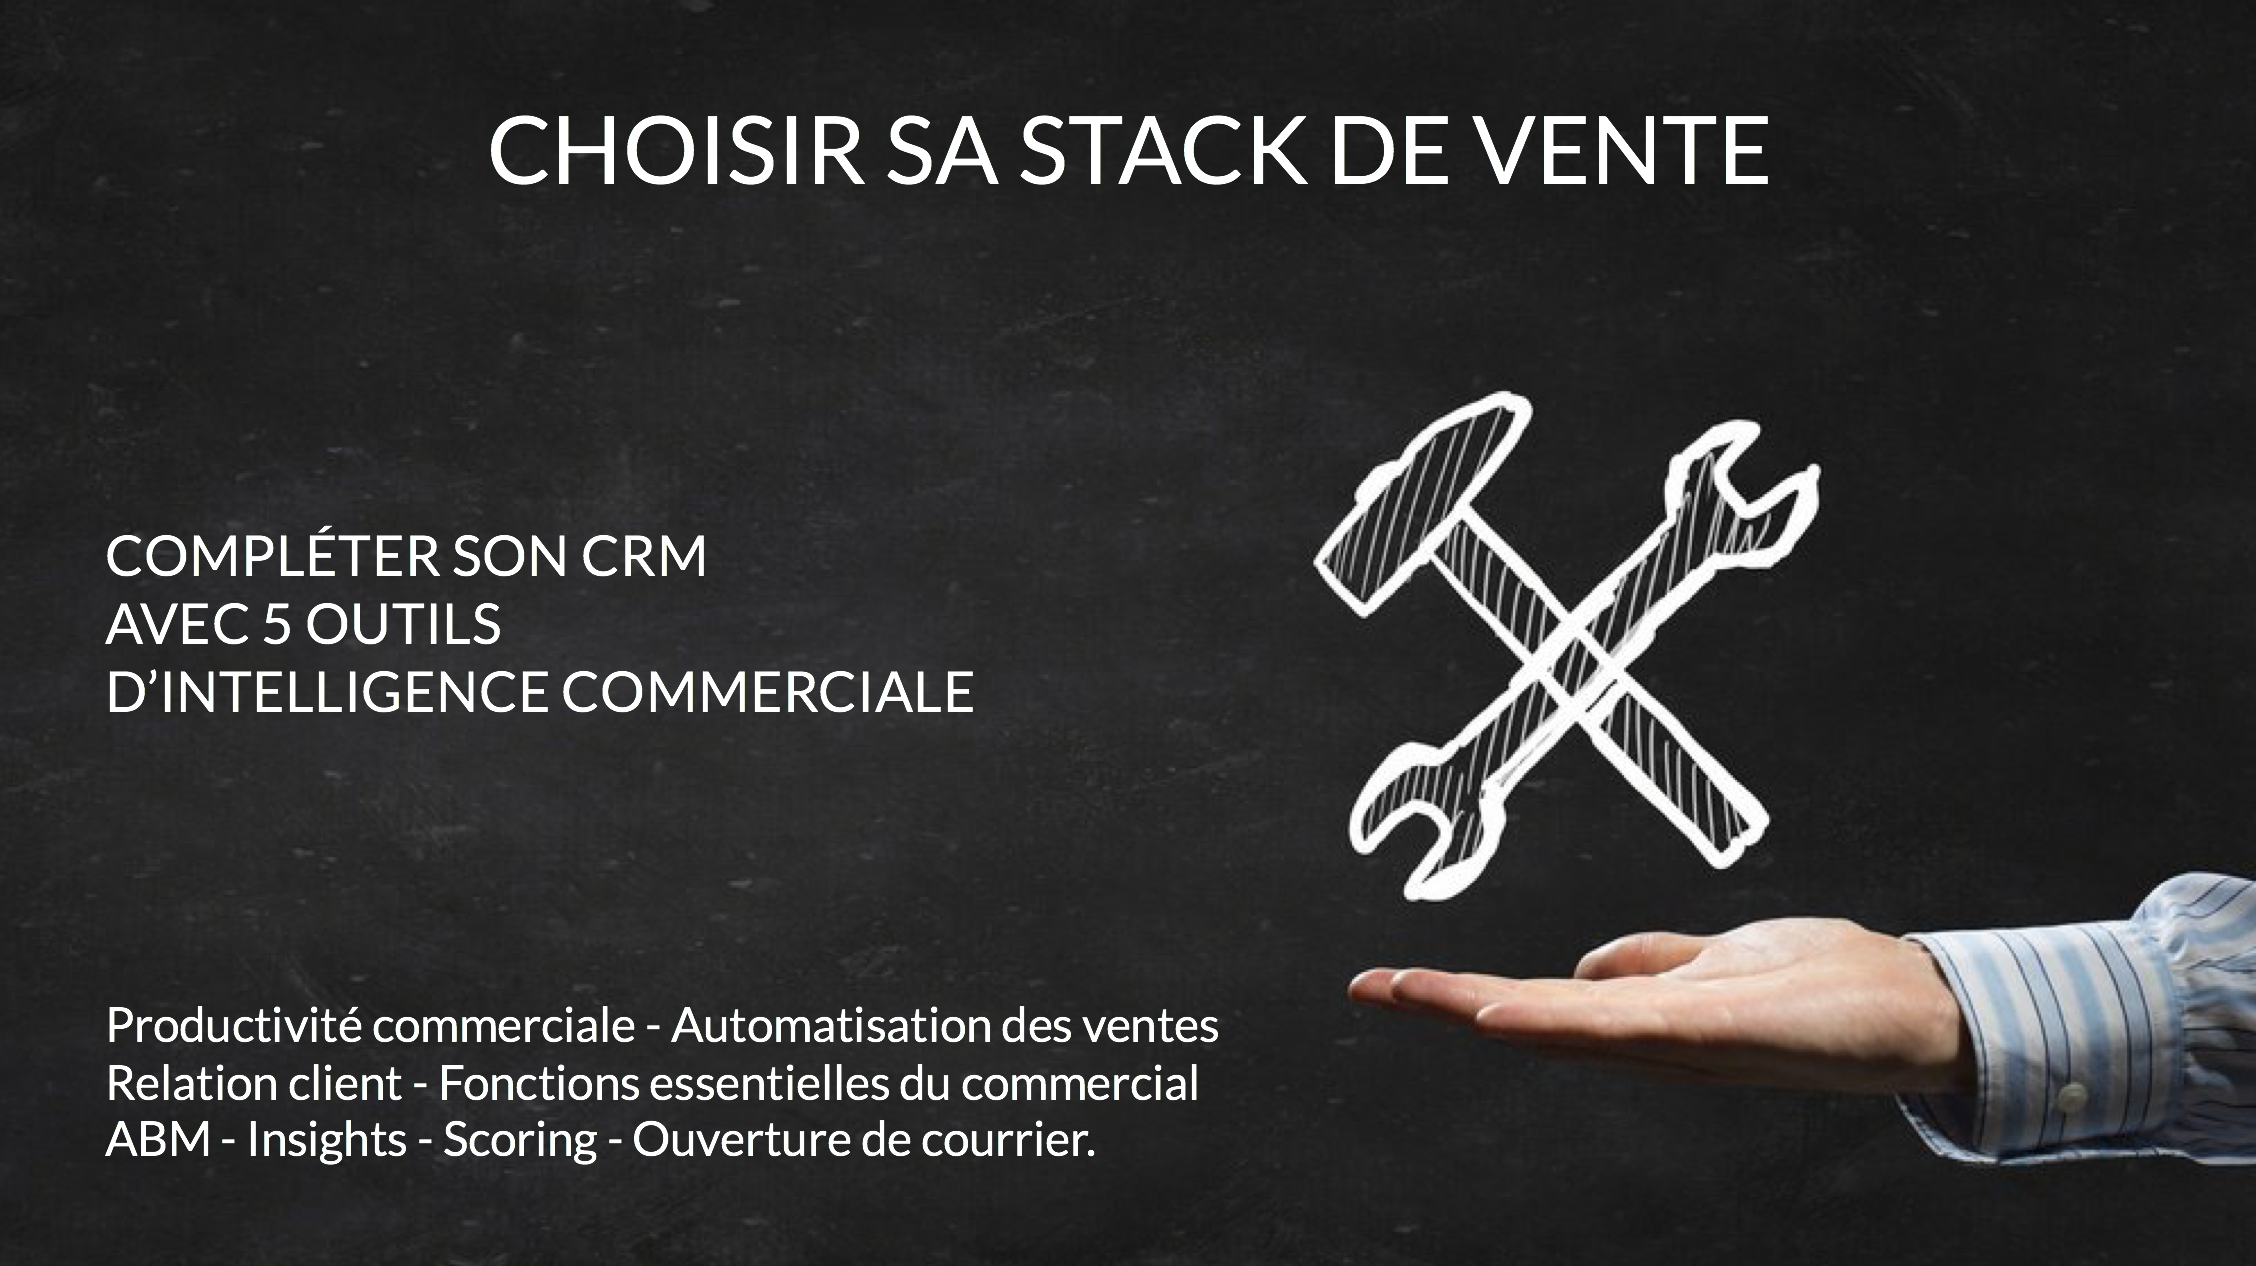 outils intelligence commerciale outils d'intelligence commerciale outils de vente